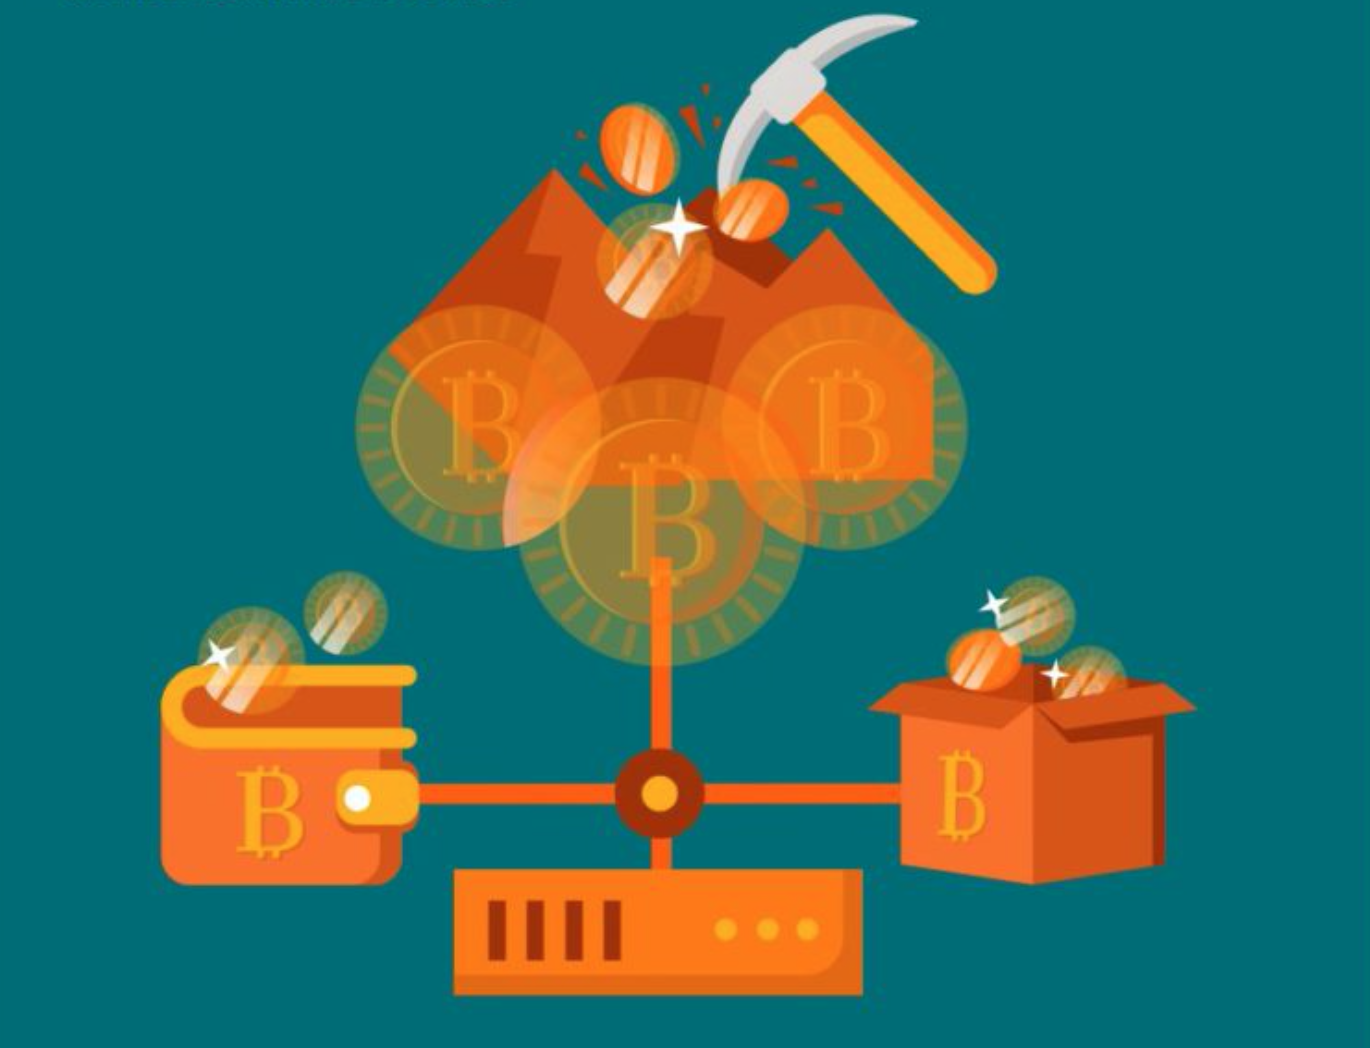 Graphic representing Bitcoin mining, courtesy of author.